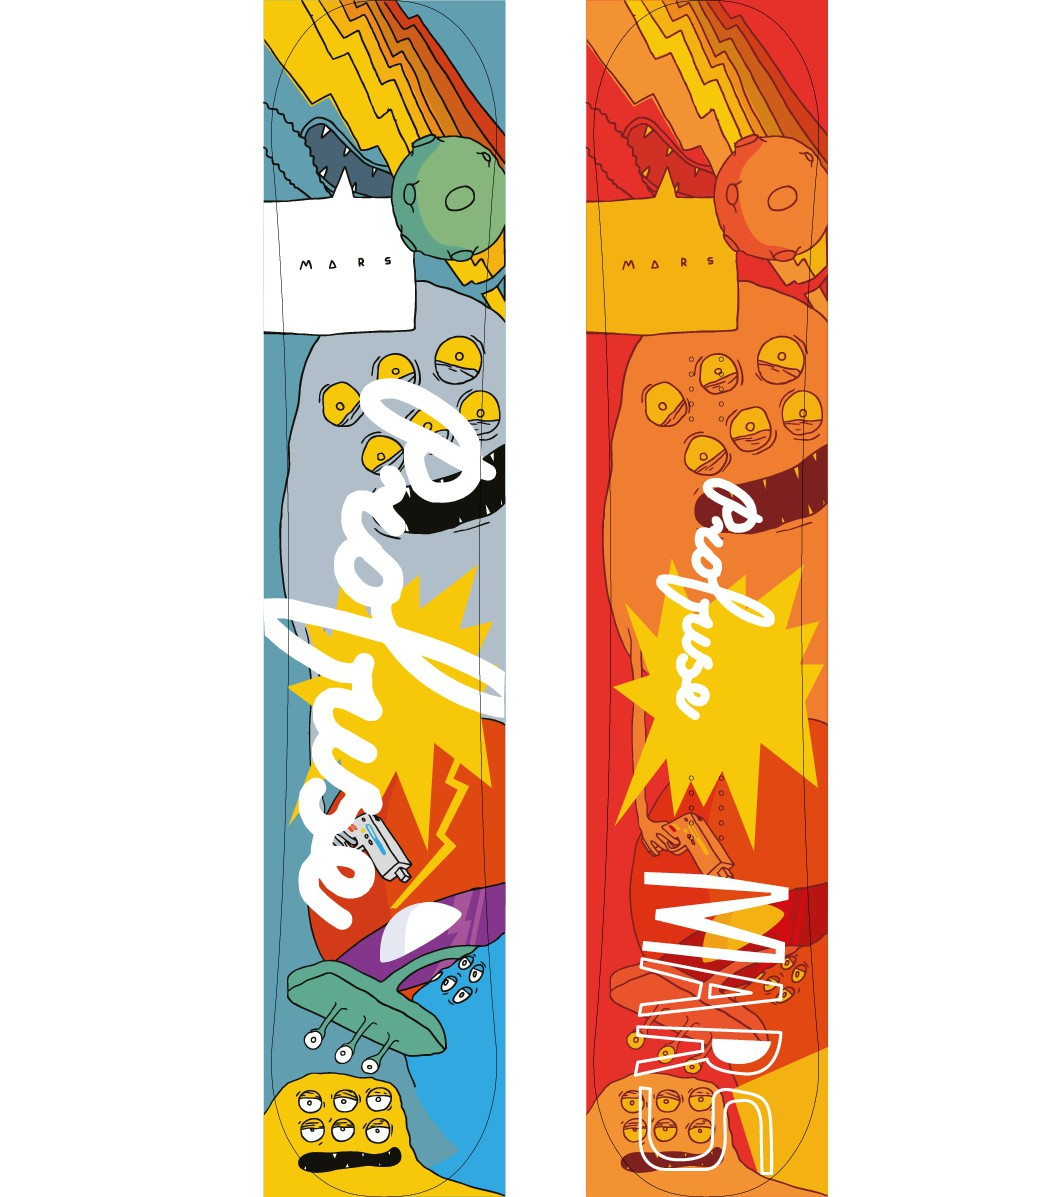 Energetic snowboard design to appeal to people loves snowboarding